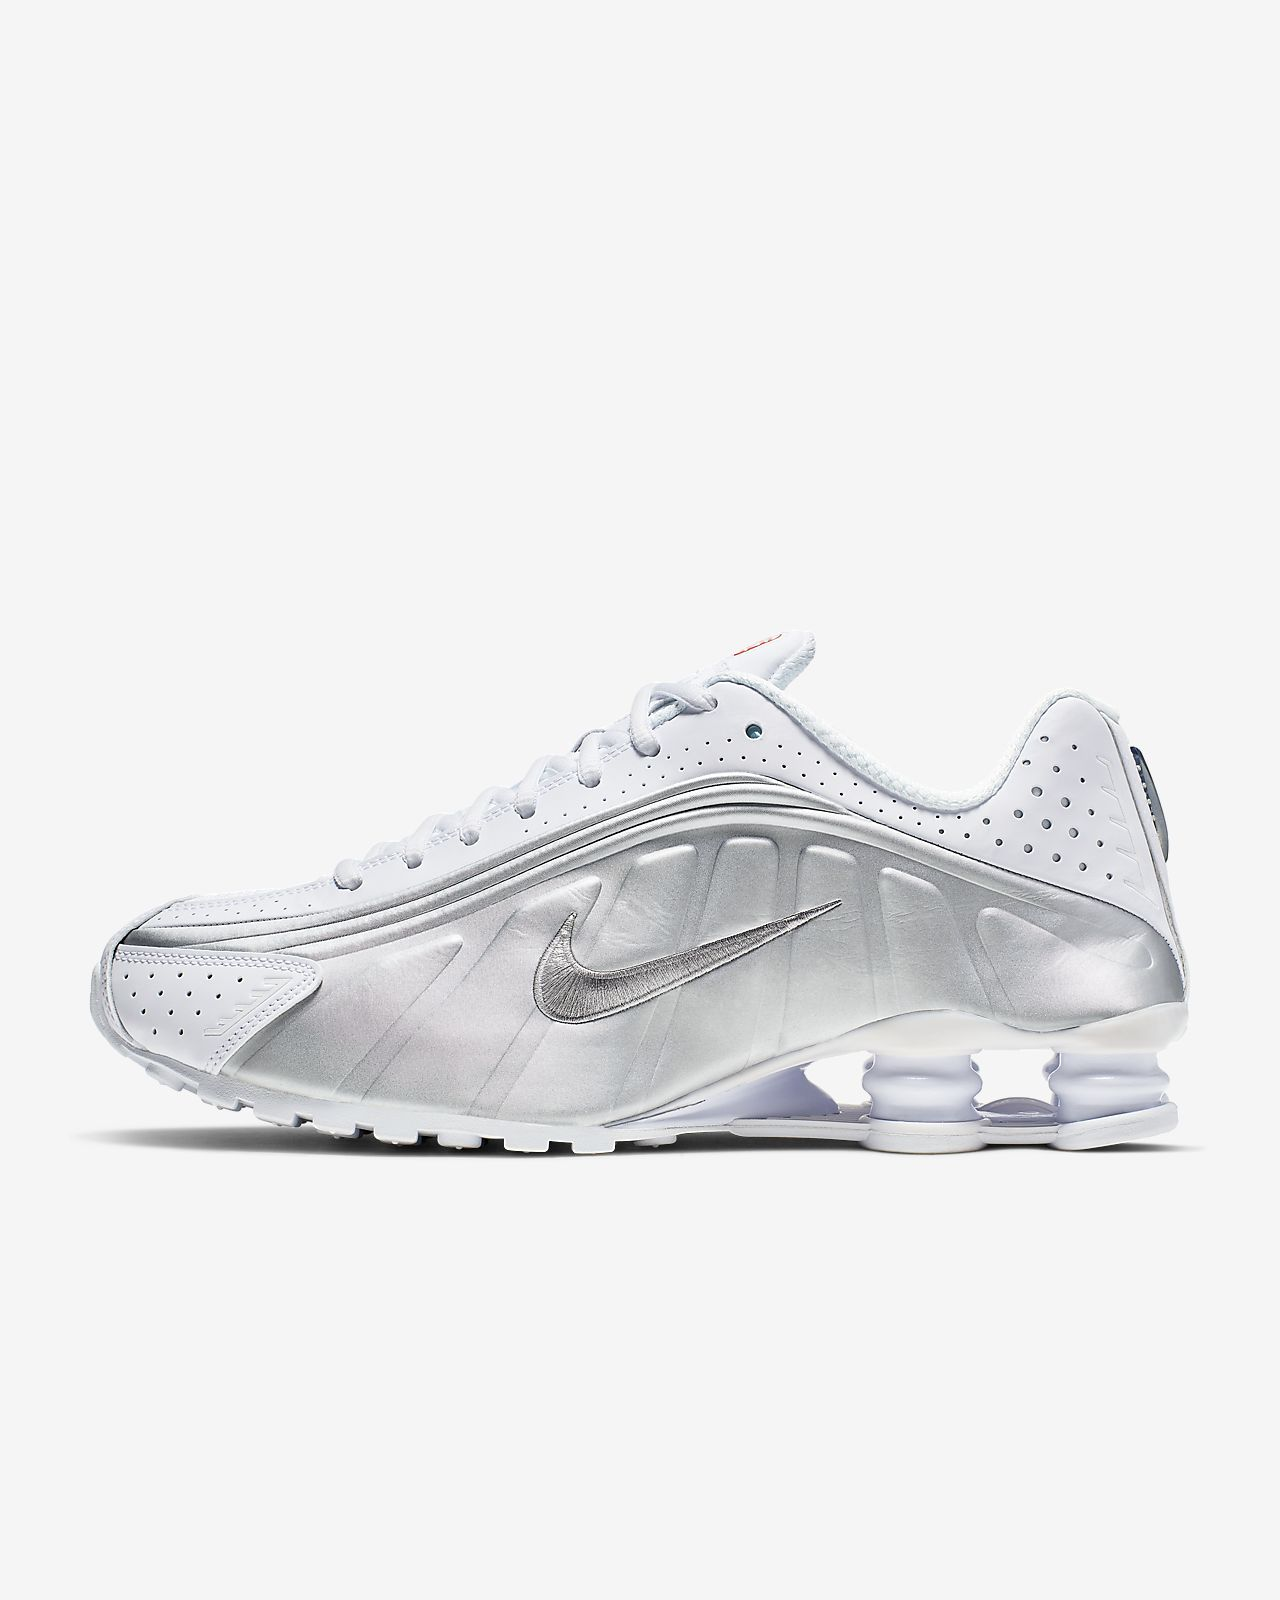 best website 7e905 eb669 Men s Shoe. Nike Shox R4